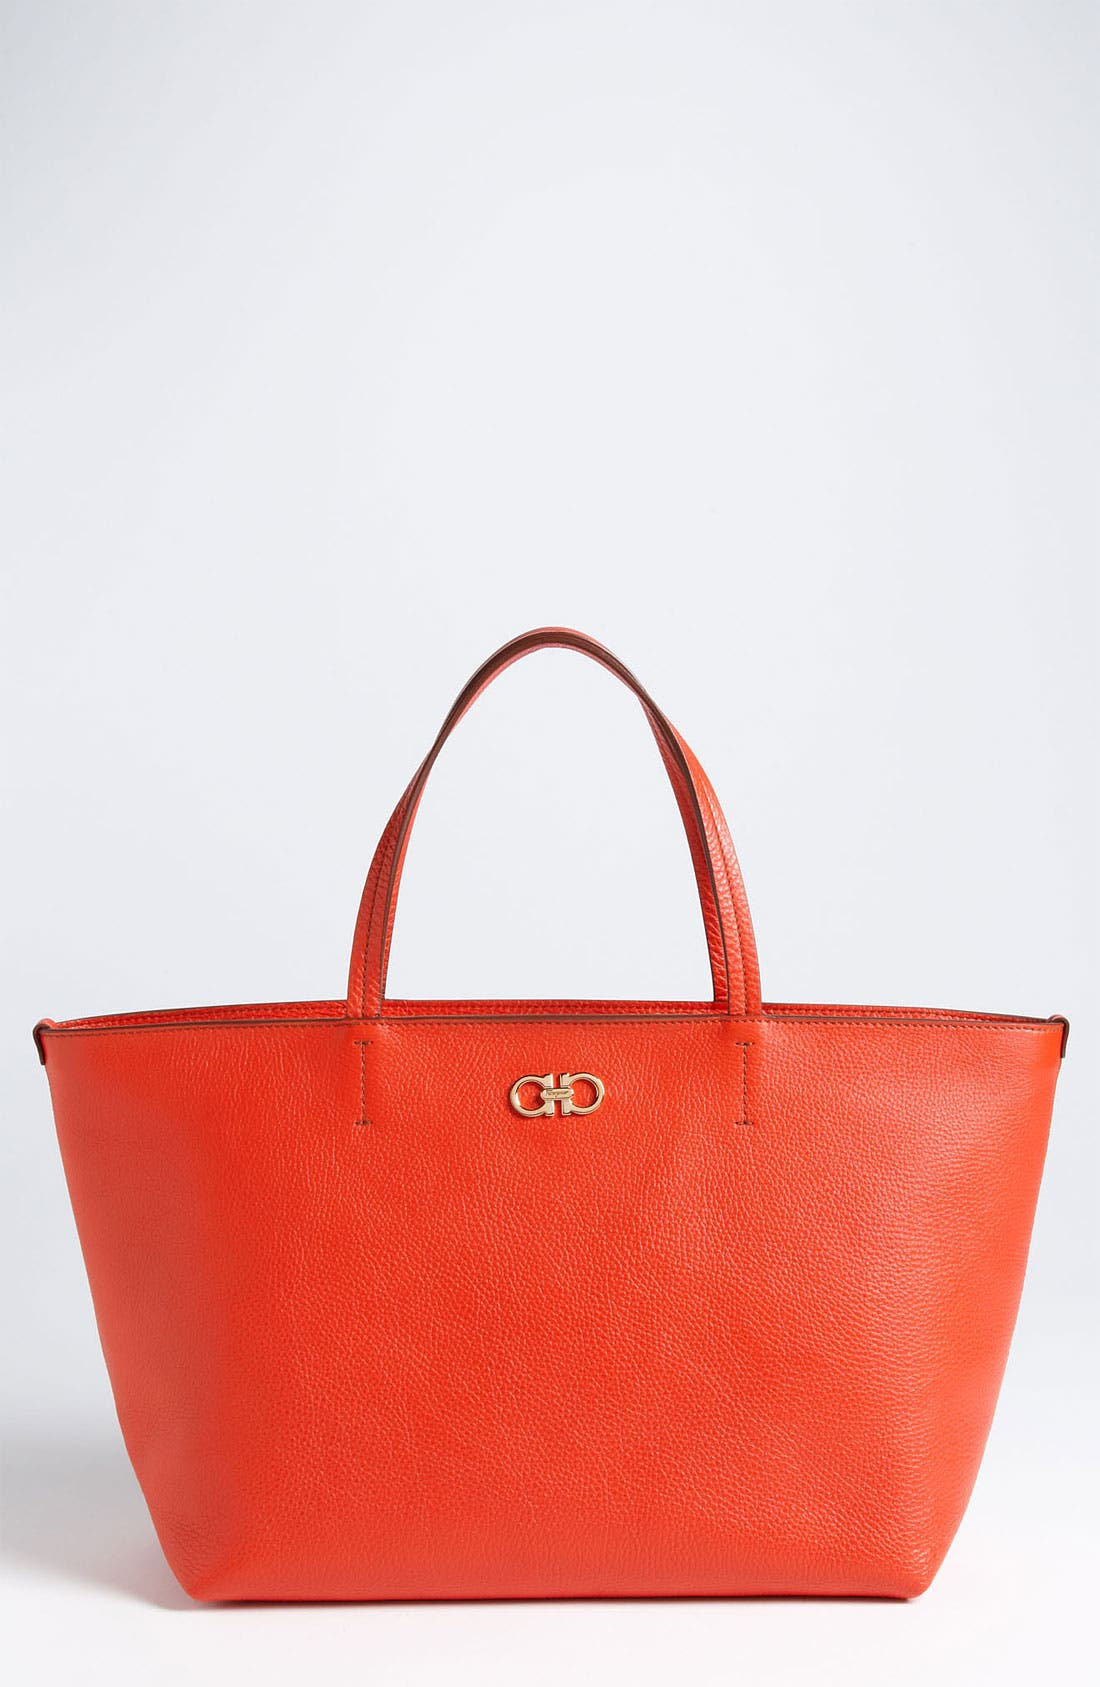 Alternate Image 1 Selected - Salvatore Ferragamo 'Bice' Leather Tote